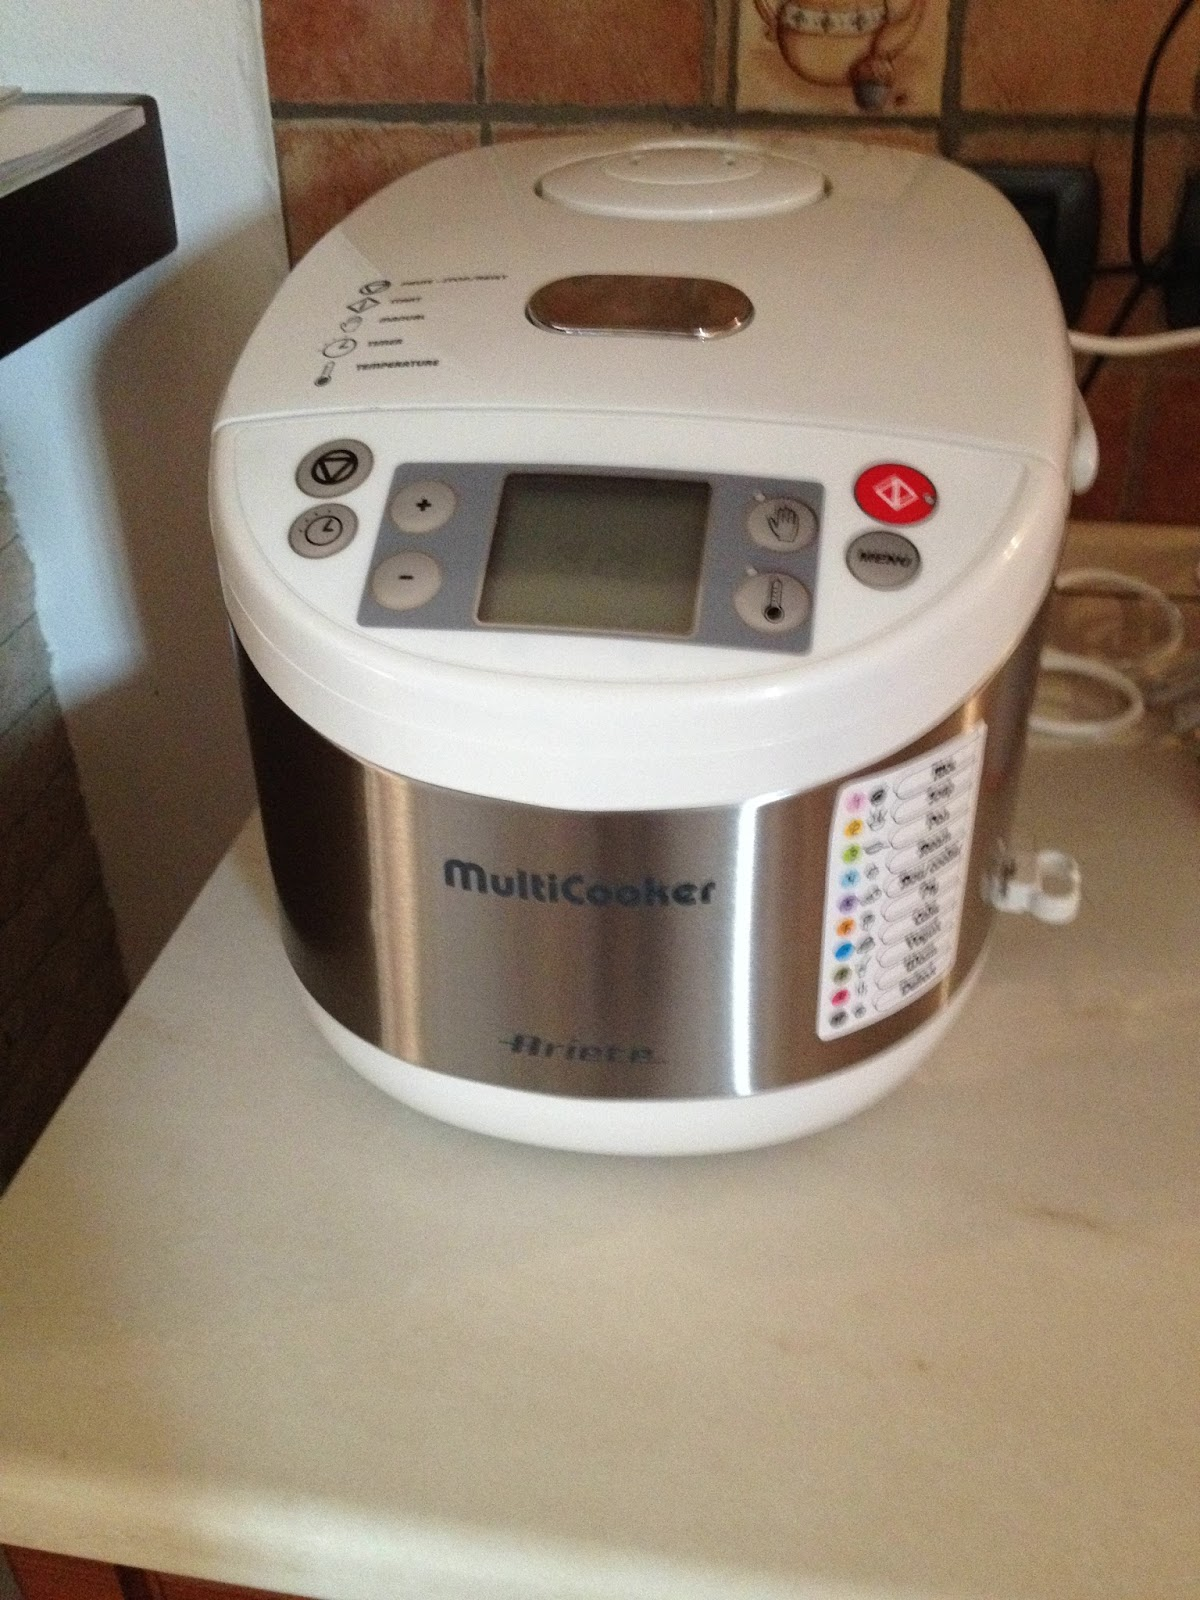 LA GAIA CUCINA DI PATTY...: Multicooker